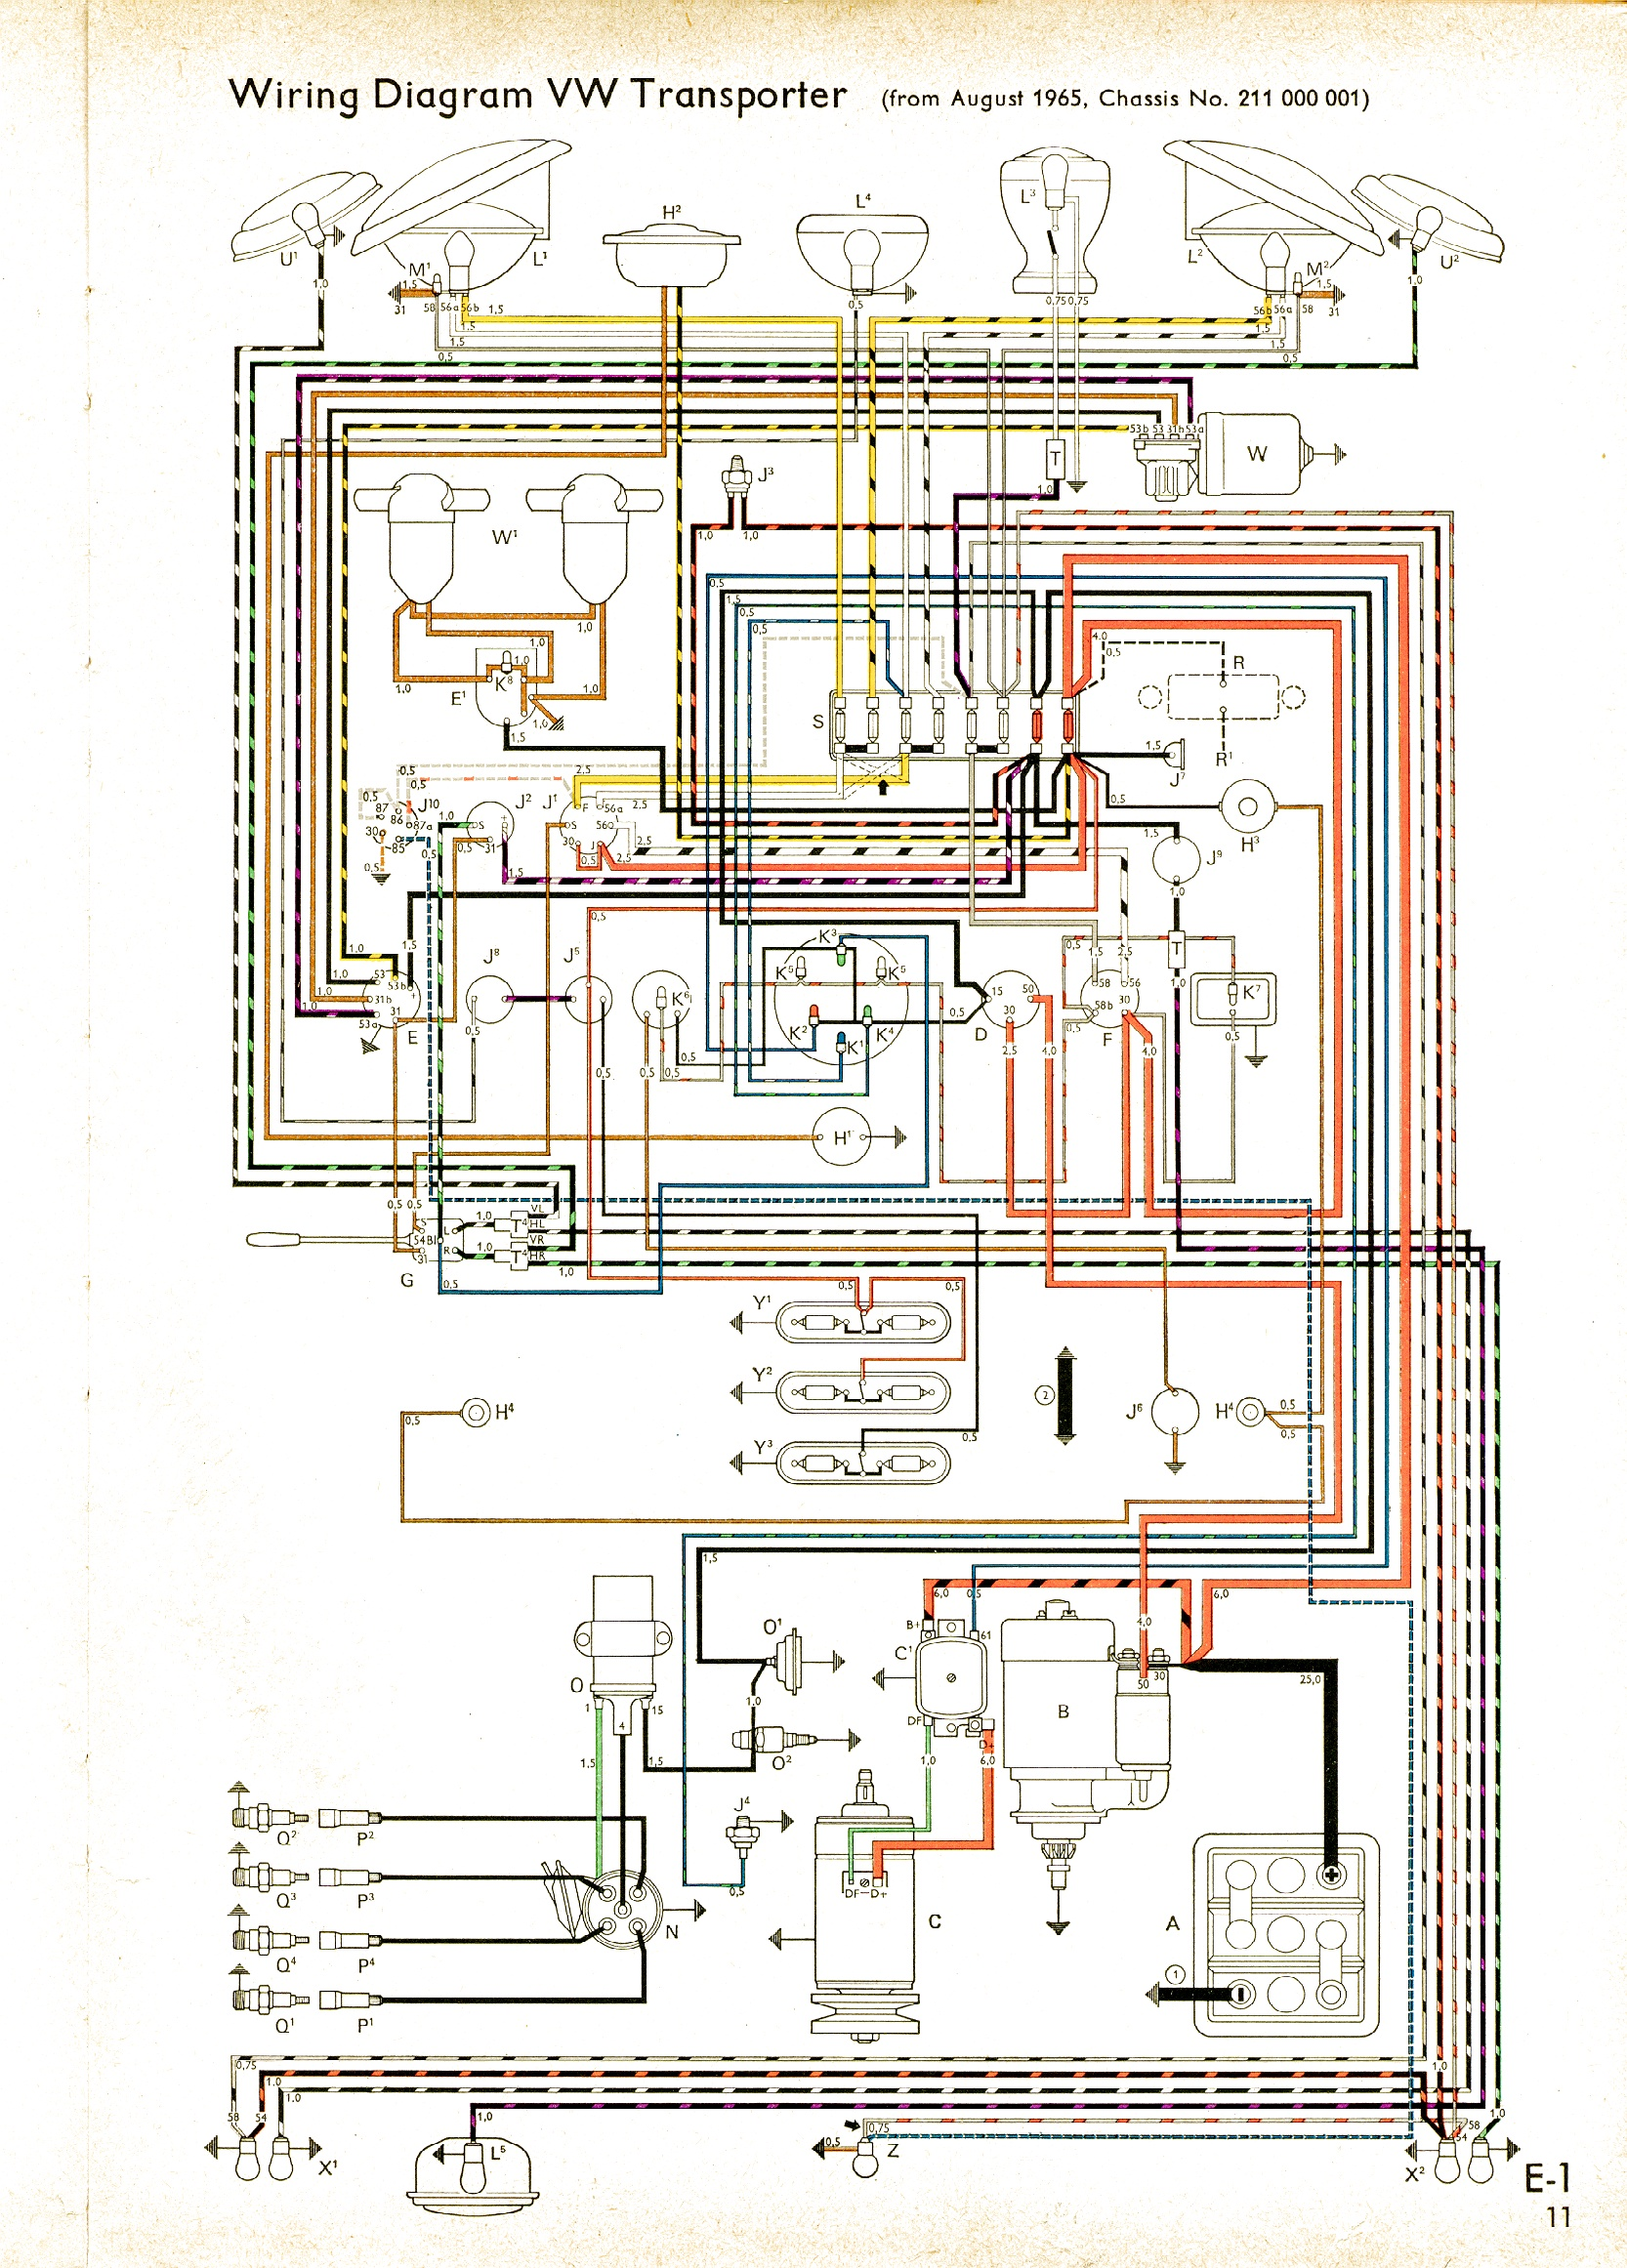 1967 vw beetle wiring diagram RIDAwNe 1967 vw bug wiring diagram on 1967 download wirning diagrams vw bug wiring diagram at webbmarketing.co